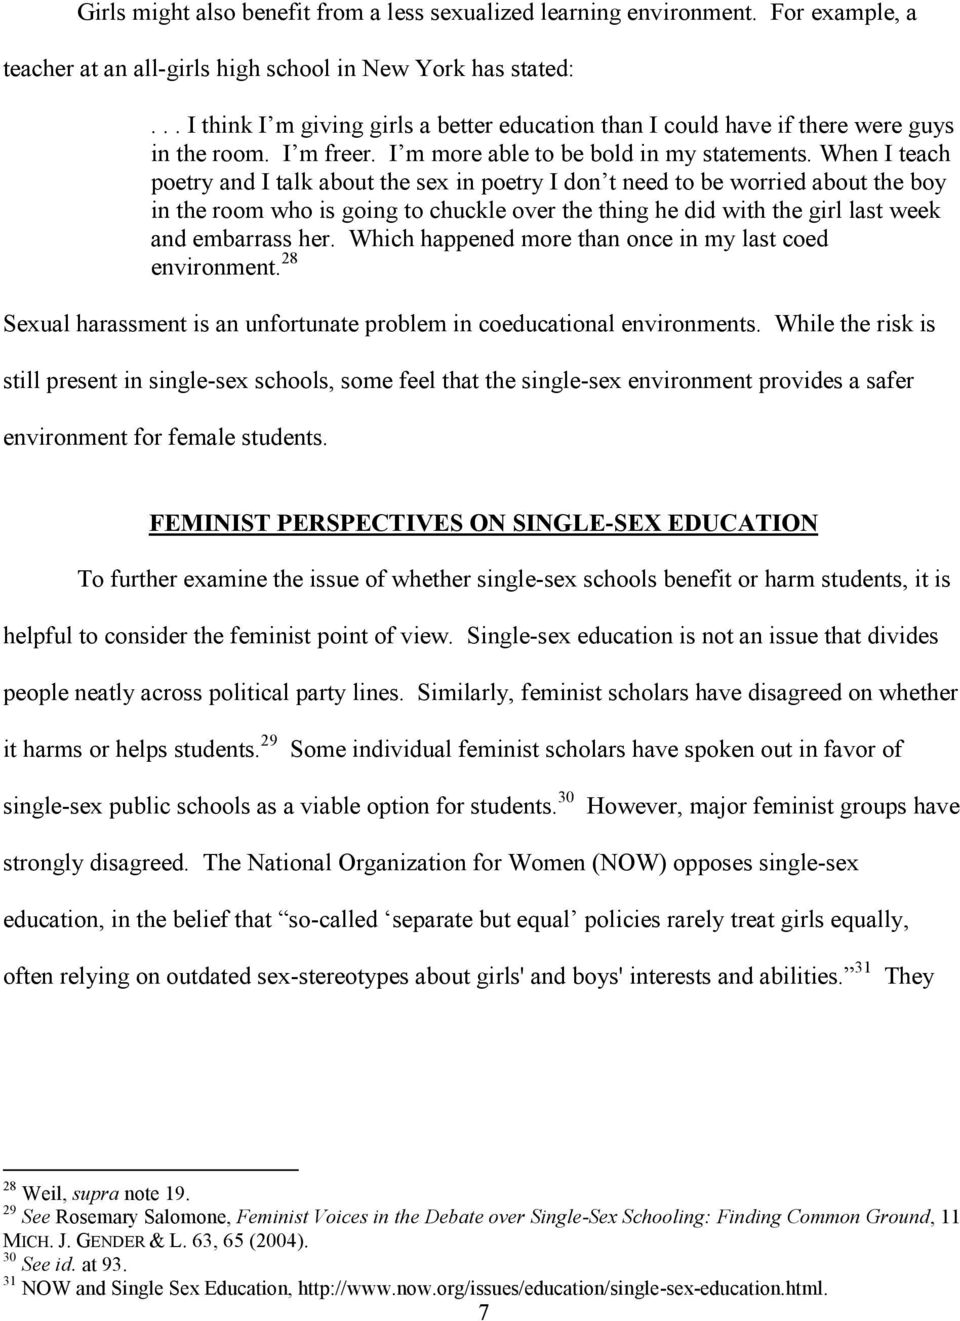 Problems with single sex education